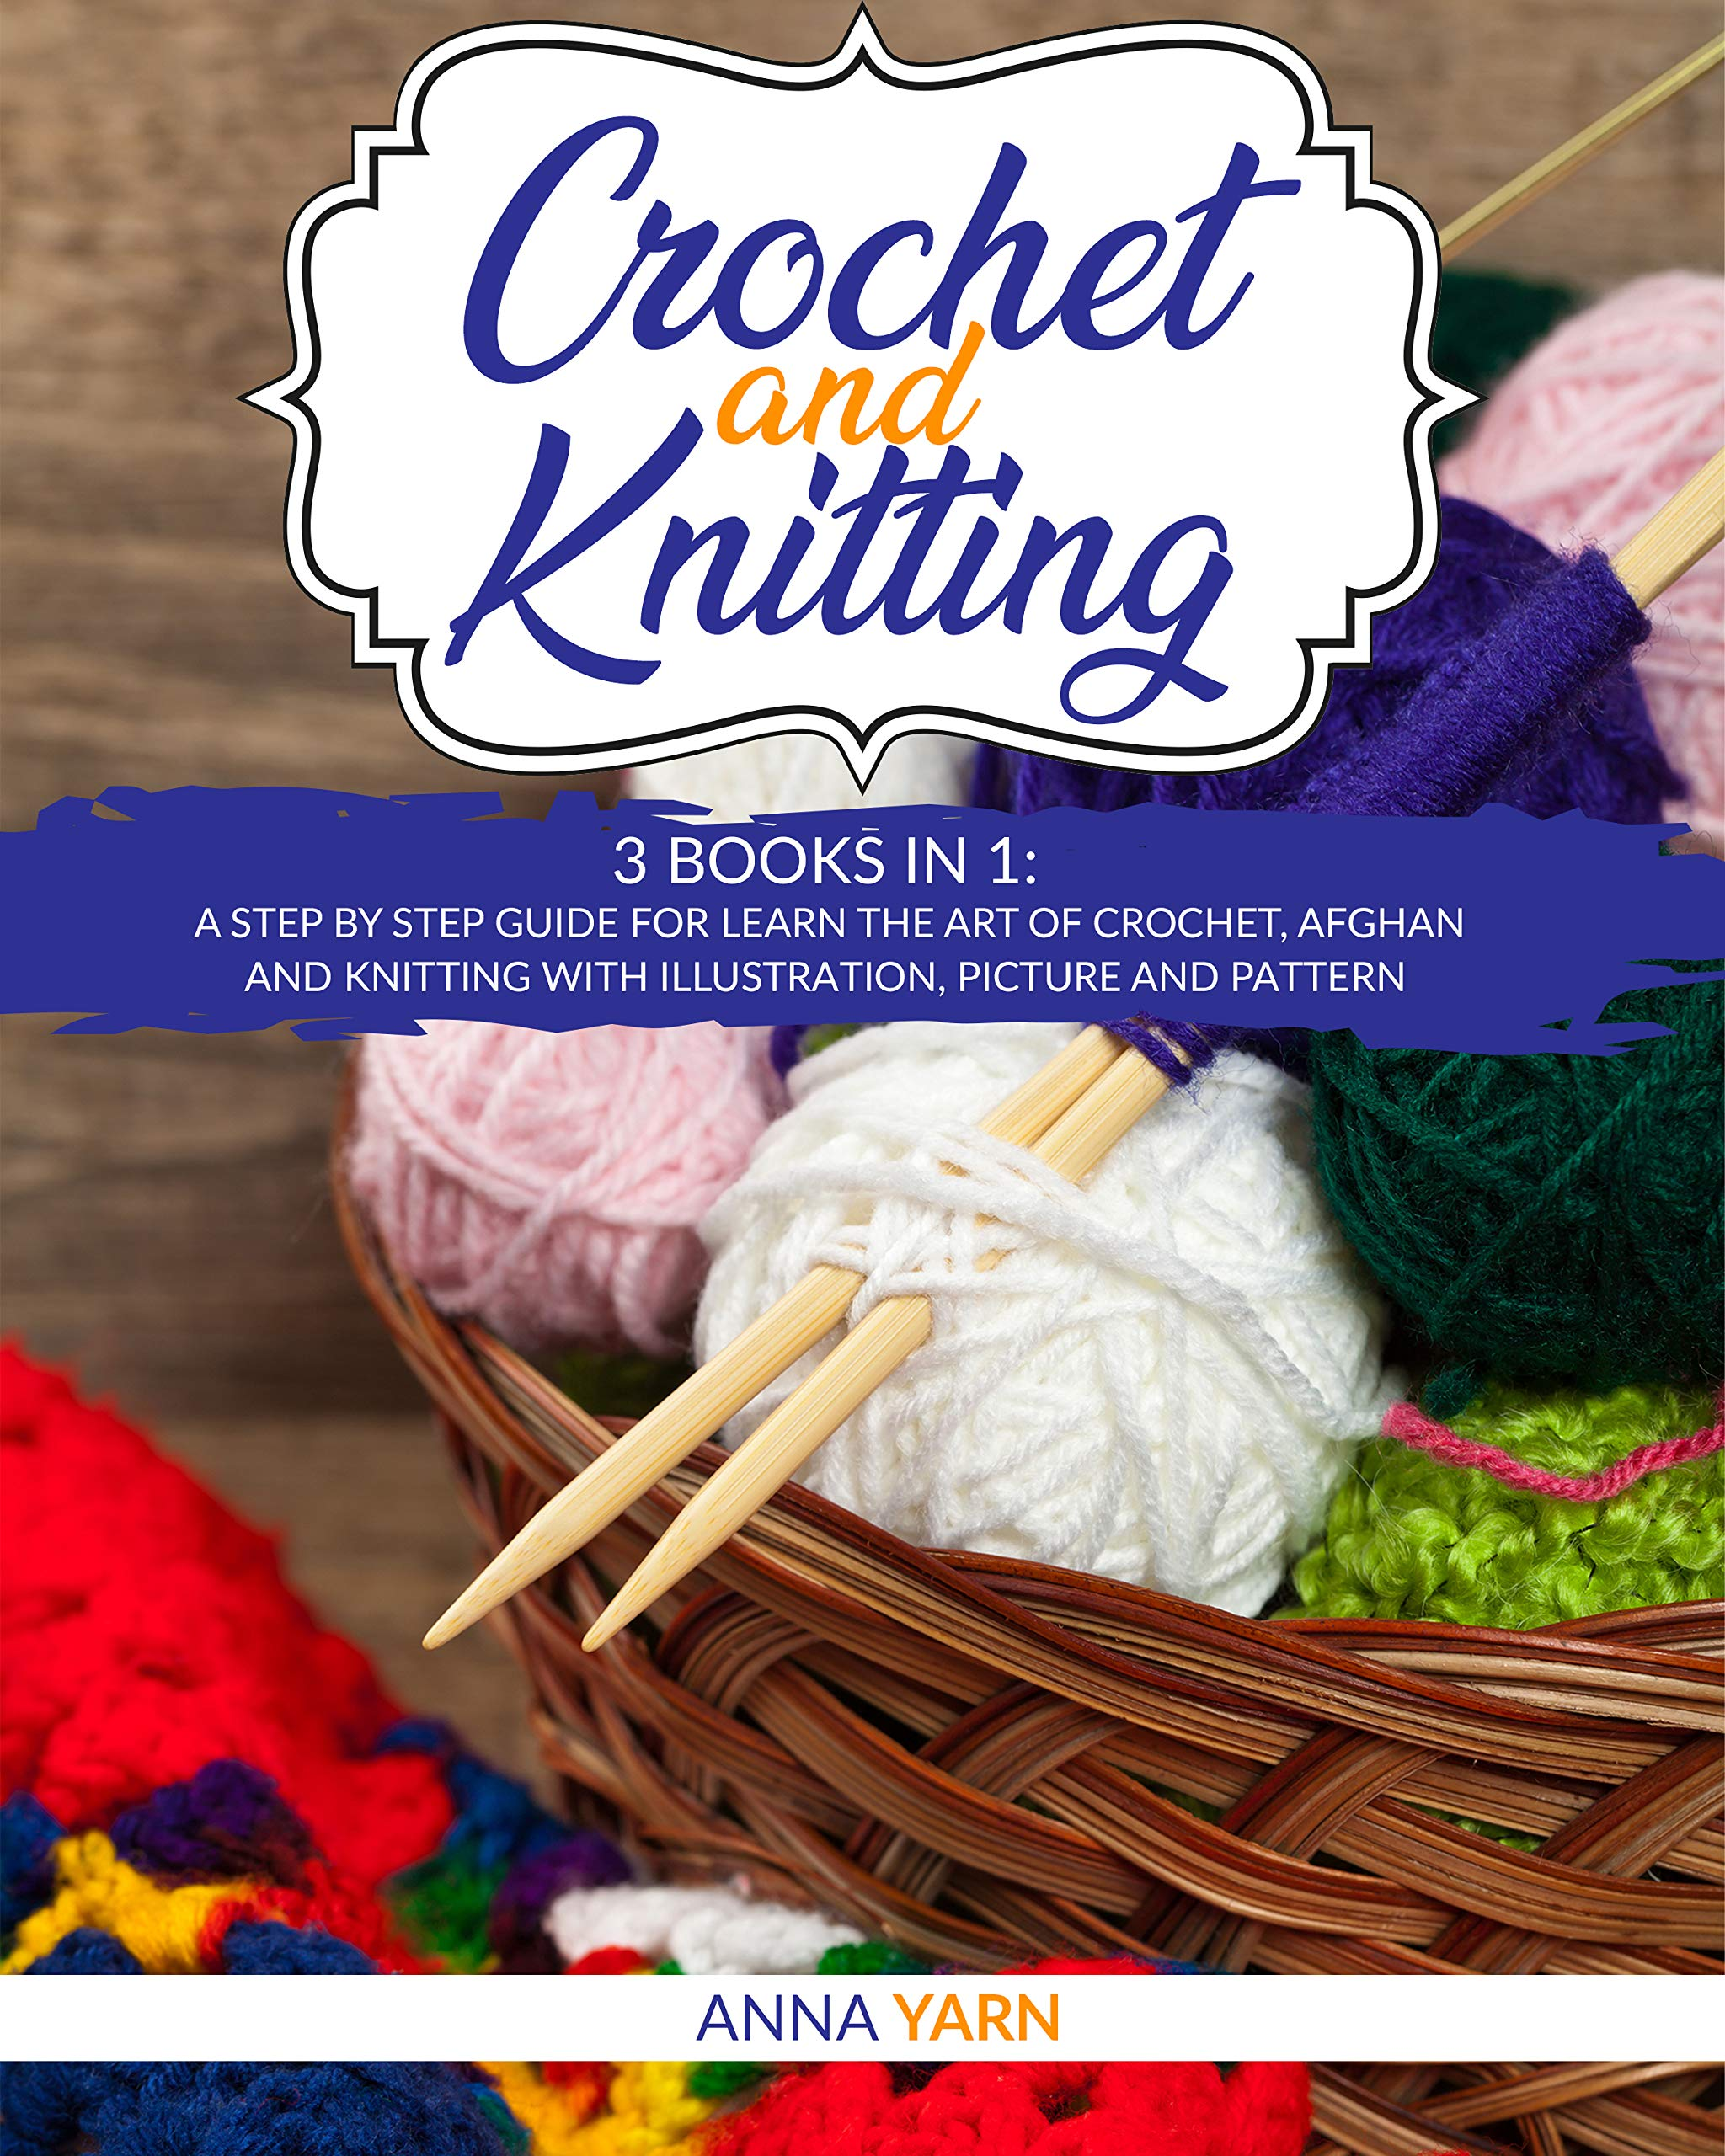 CROCHET AND KNITTING: 3 BOOKS IN 1 A STEP BY STEP GUIDE FOR LEARN THE ART OF CROCHET AFGHAN AN KNITTING WITH ILLUSTRATION, PICTURE AND PATTERN